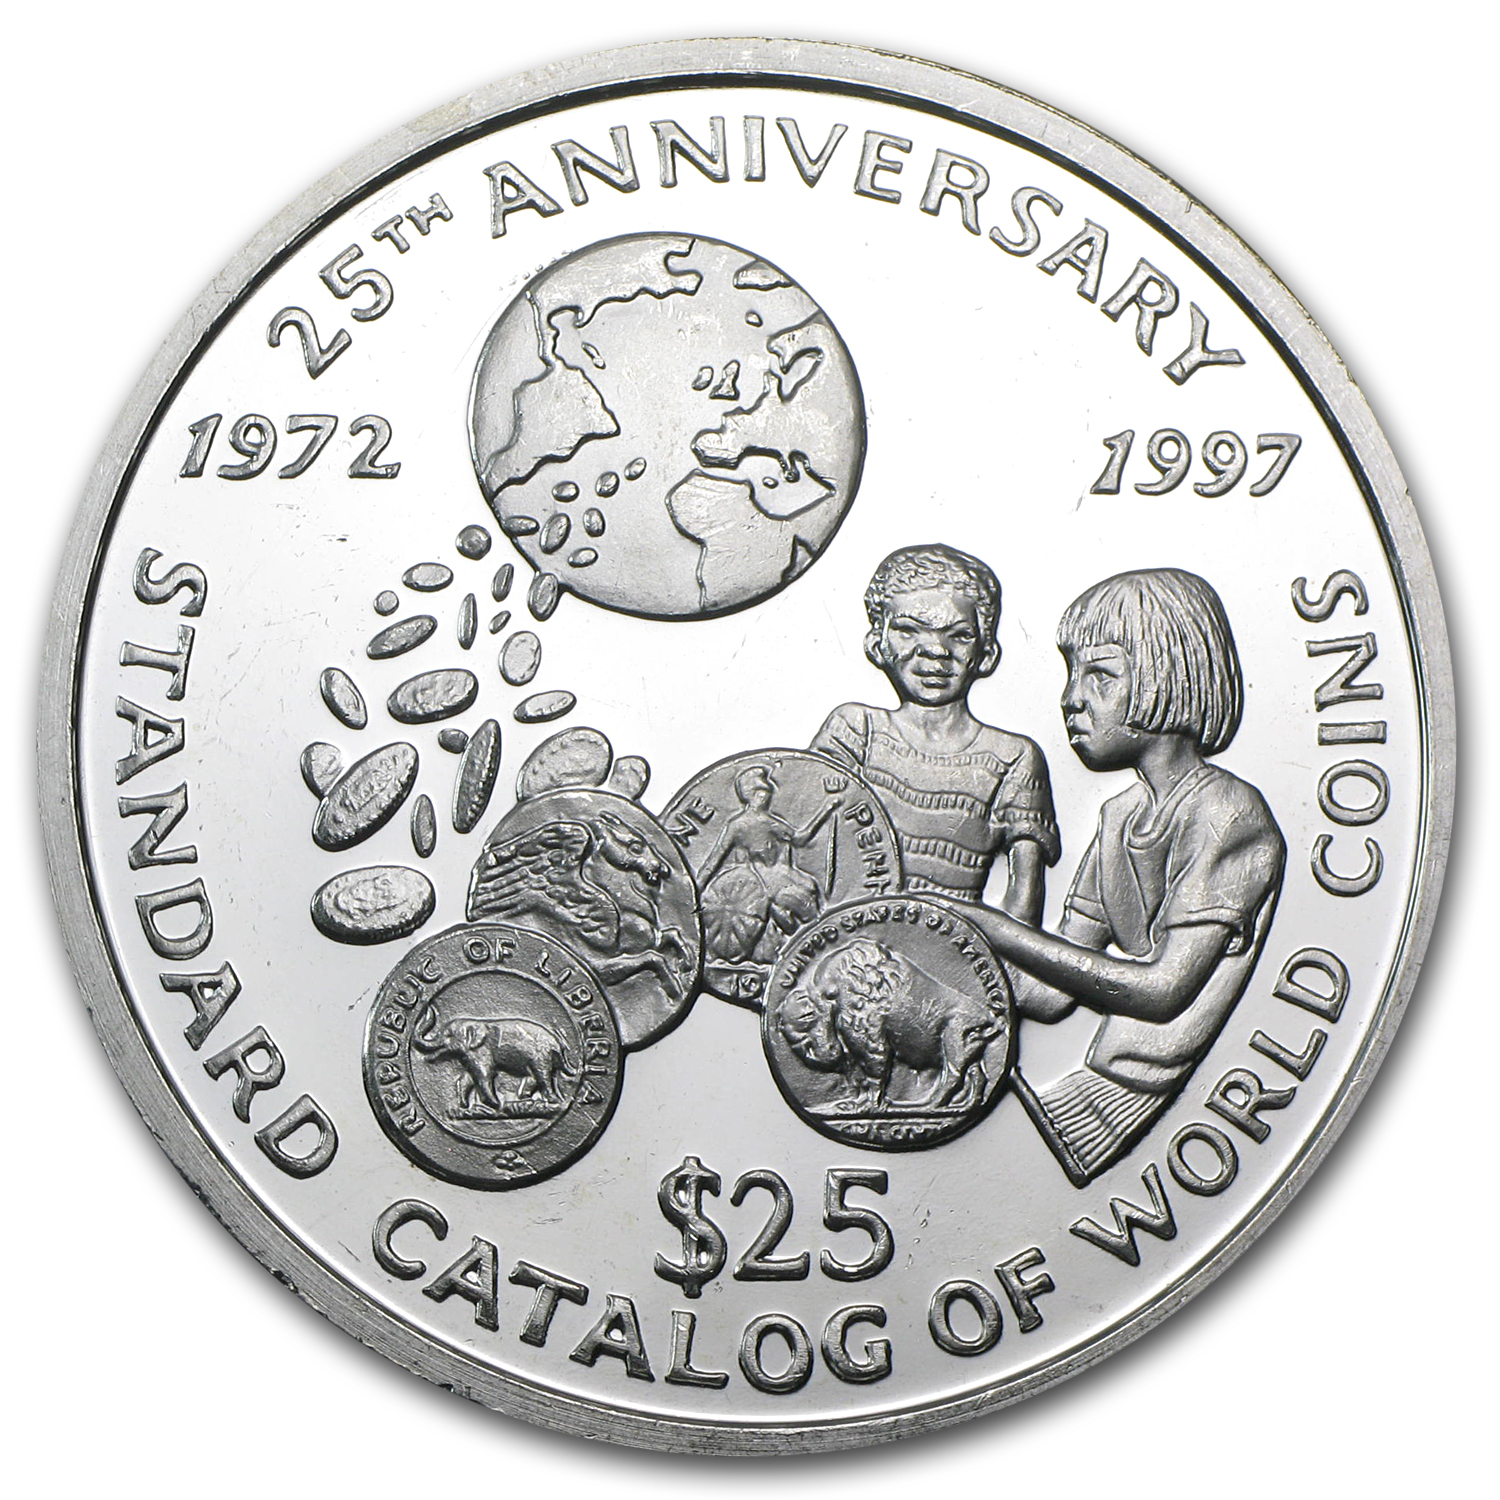 Liberia 1979 25 Dollar Silver World Coin Catalog